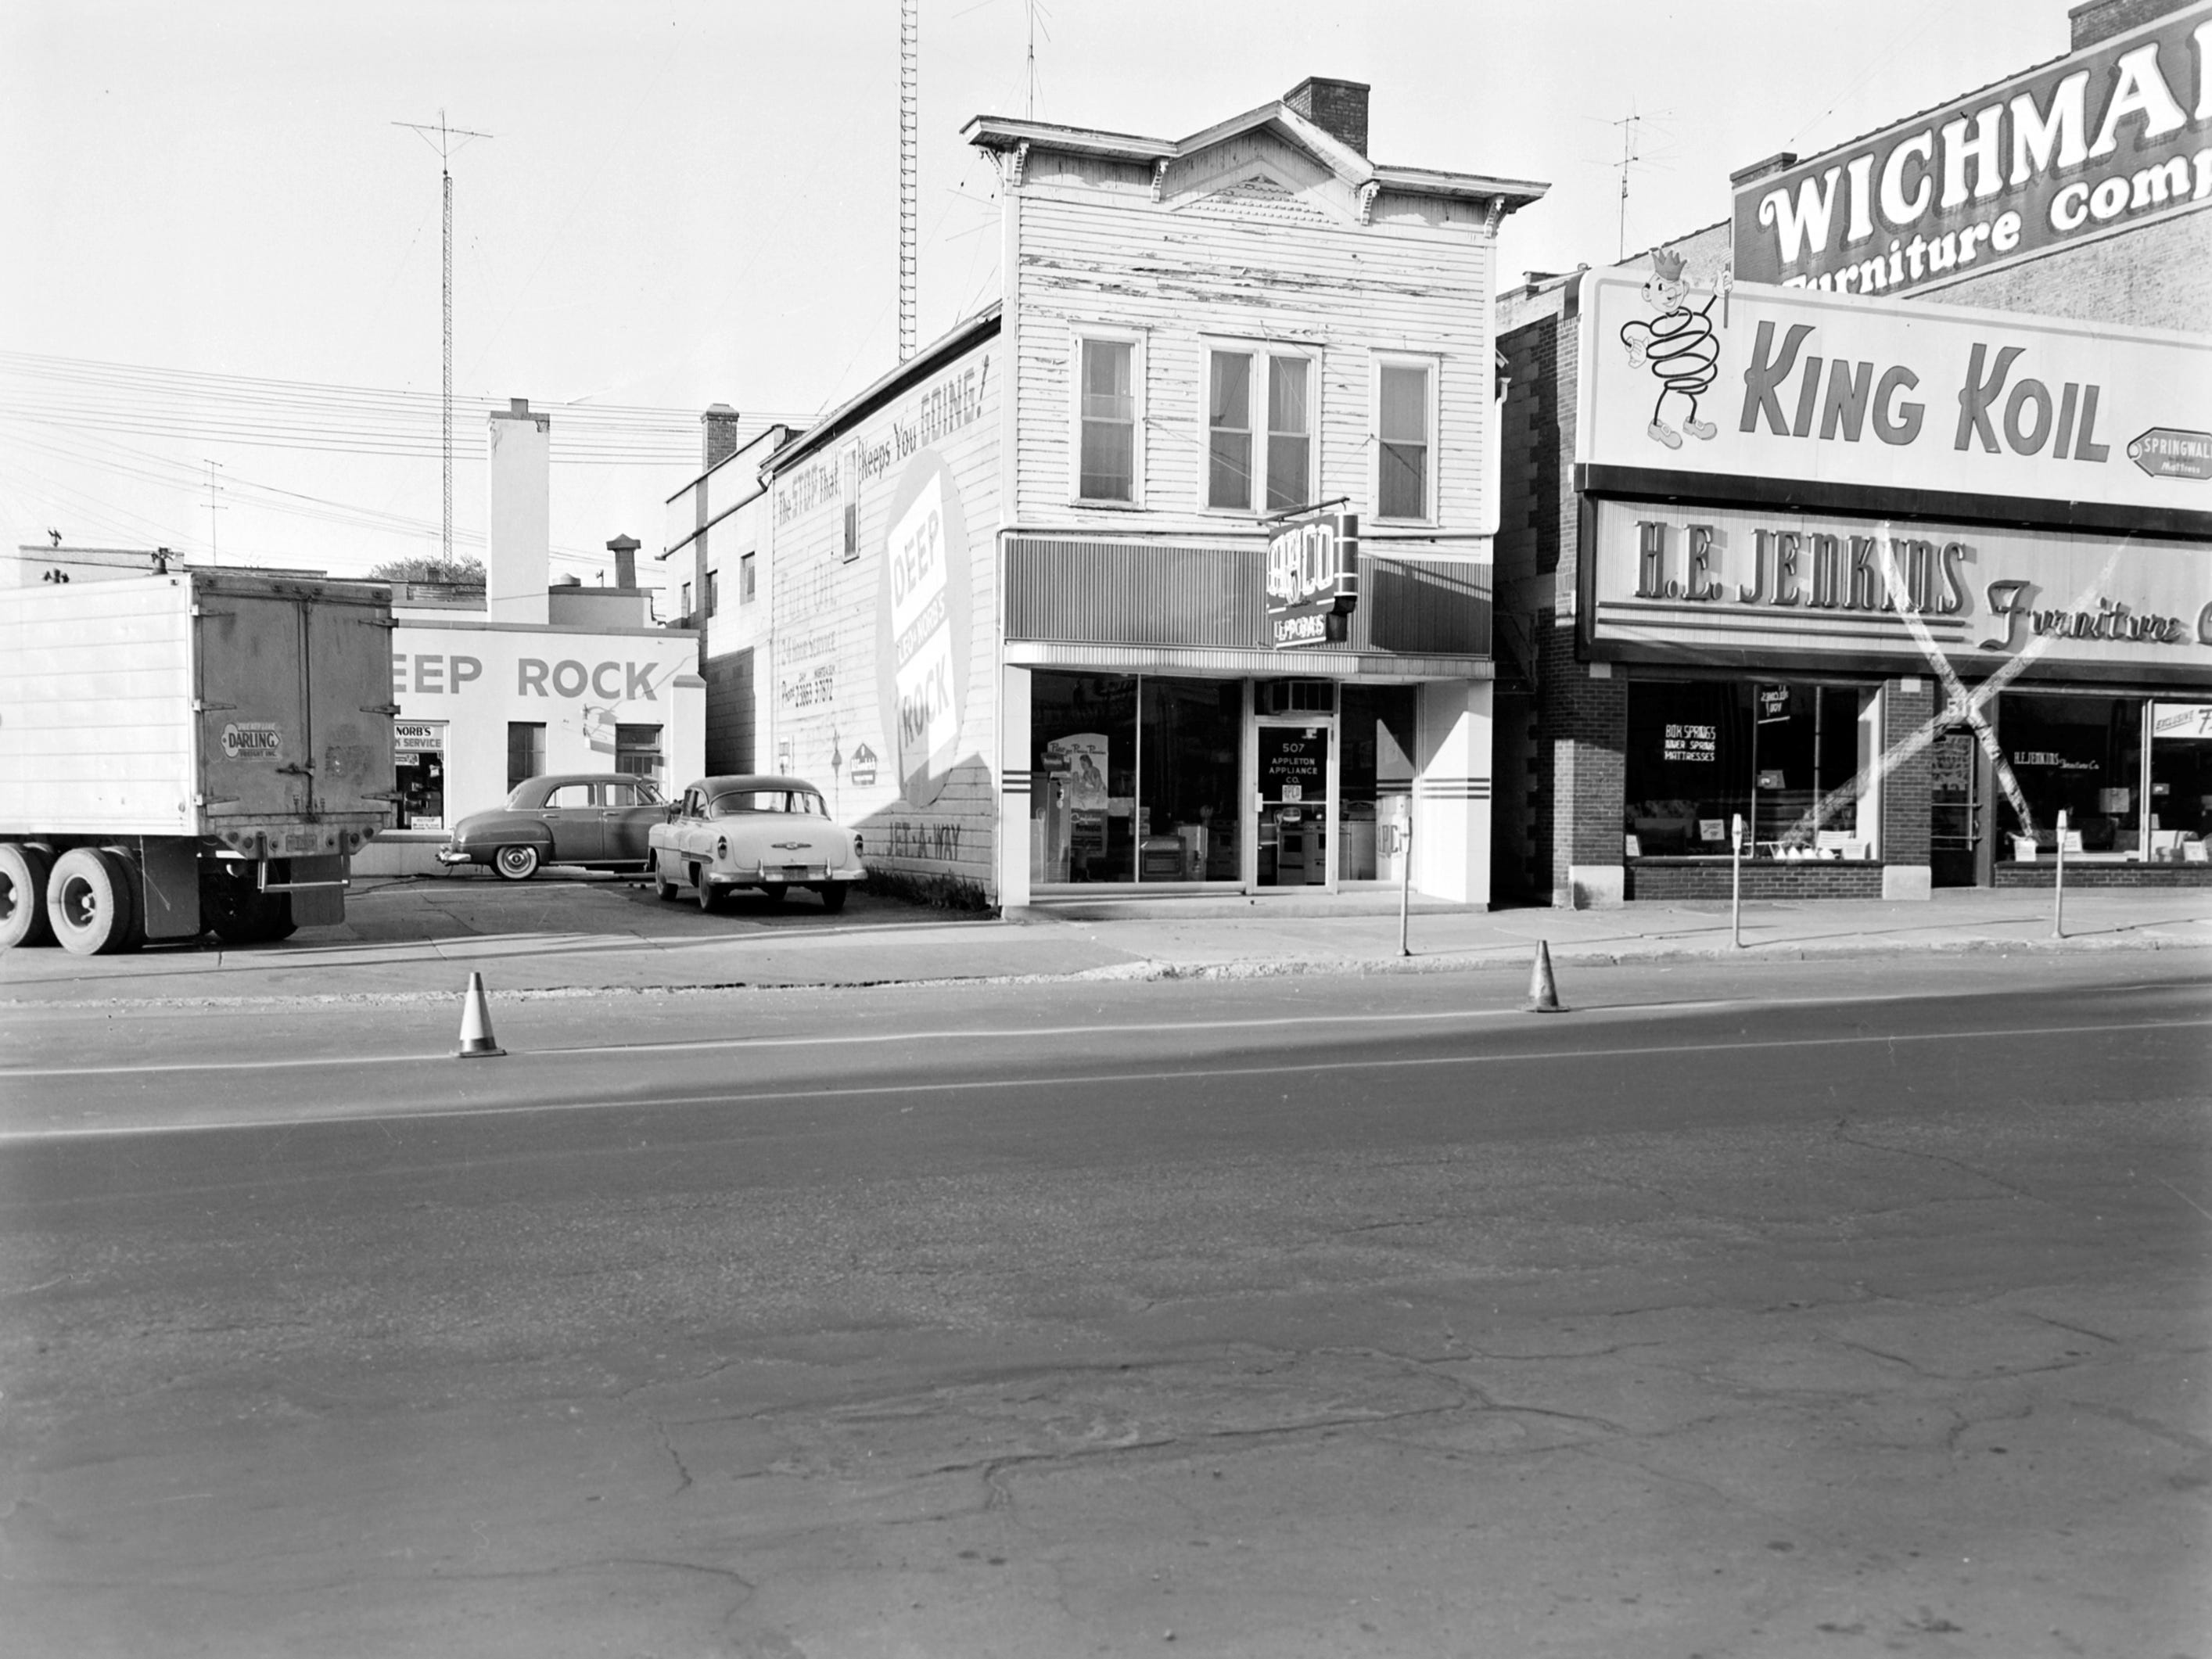 1957 Downtown Appleton. 500 West block on the south side of College Avenue: Leo/Norb's Deep Rock Service Station. Appleton Appliance. H. E. Jenkins Furniture.  Post-Crescent photo by staff.